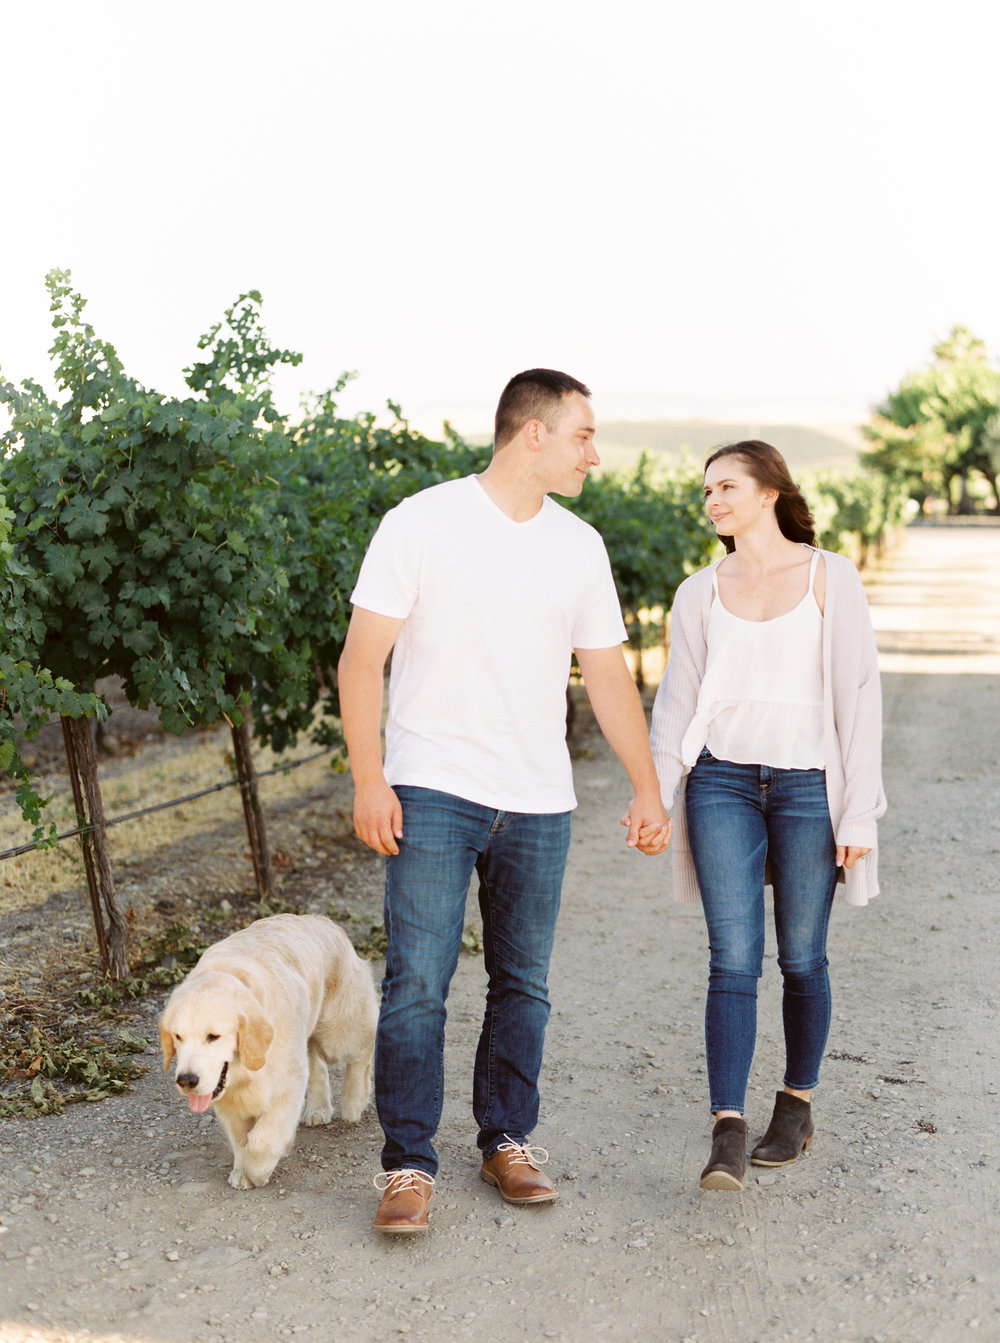 del-valle-livermore-engagement-4.jpg